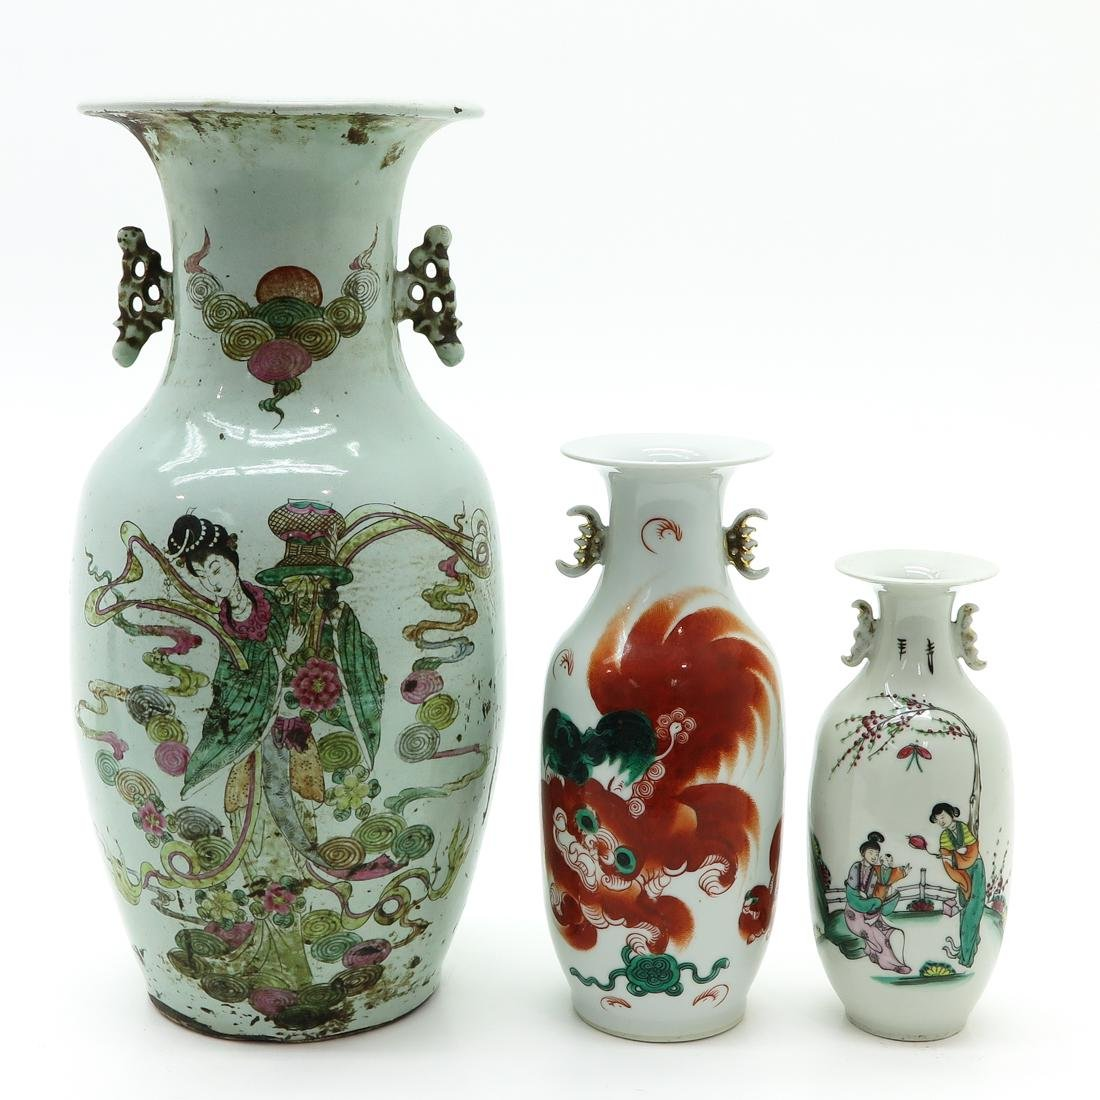 Lot of 3 Vases